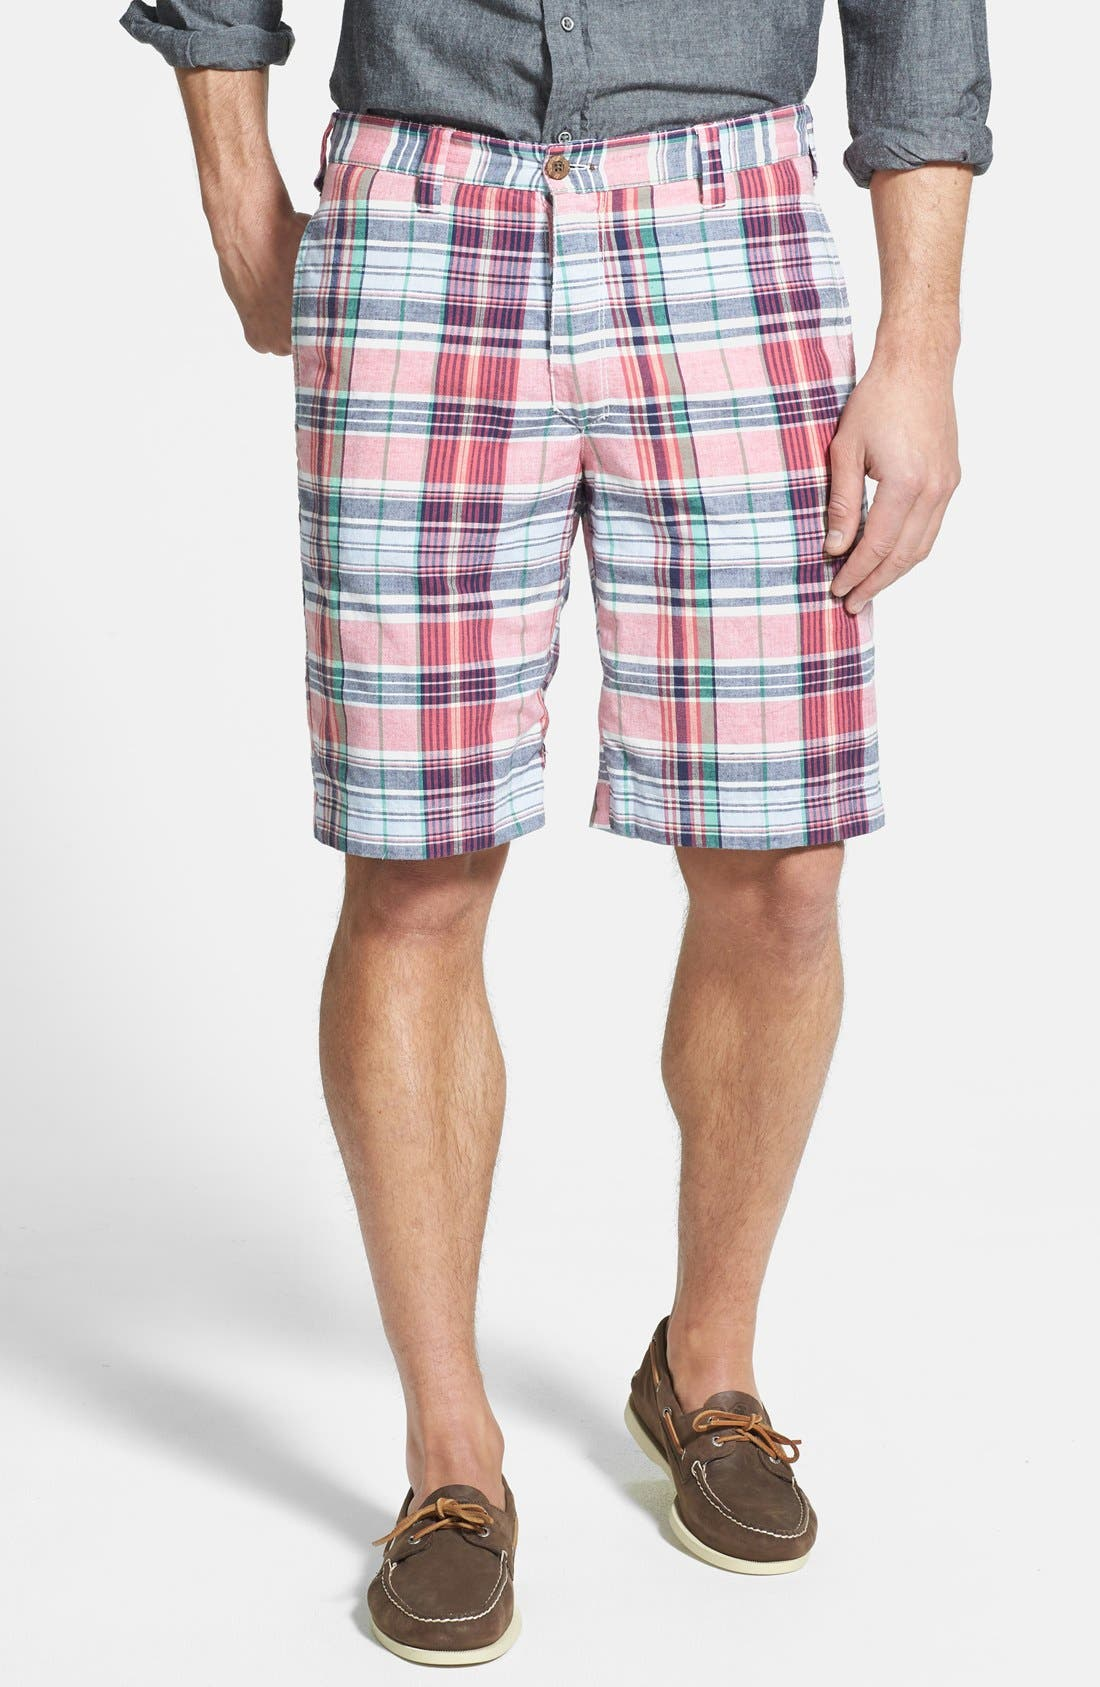 Alternate Image 1 Selected - Tailor Vintage Plaid Reversible Shorts